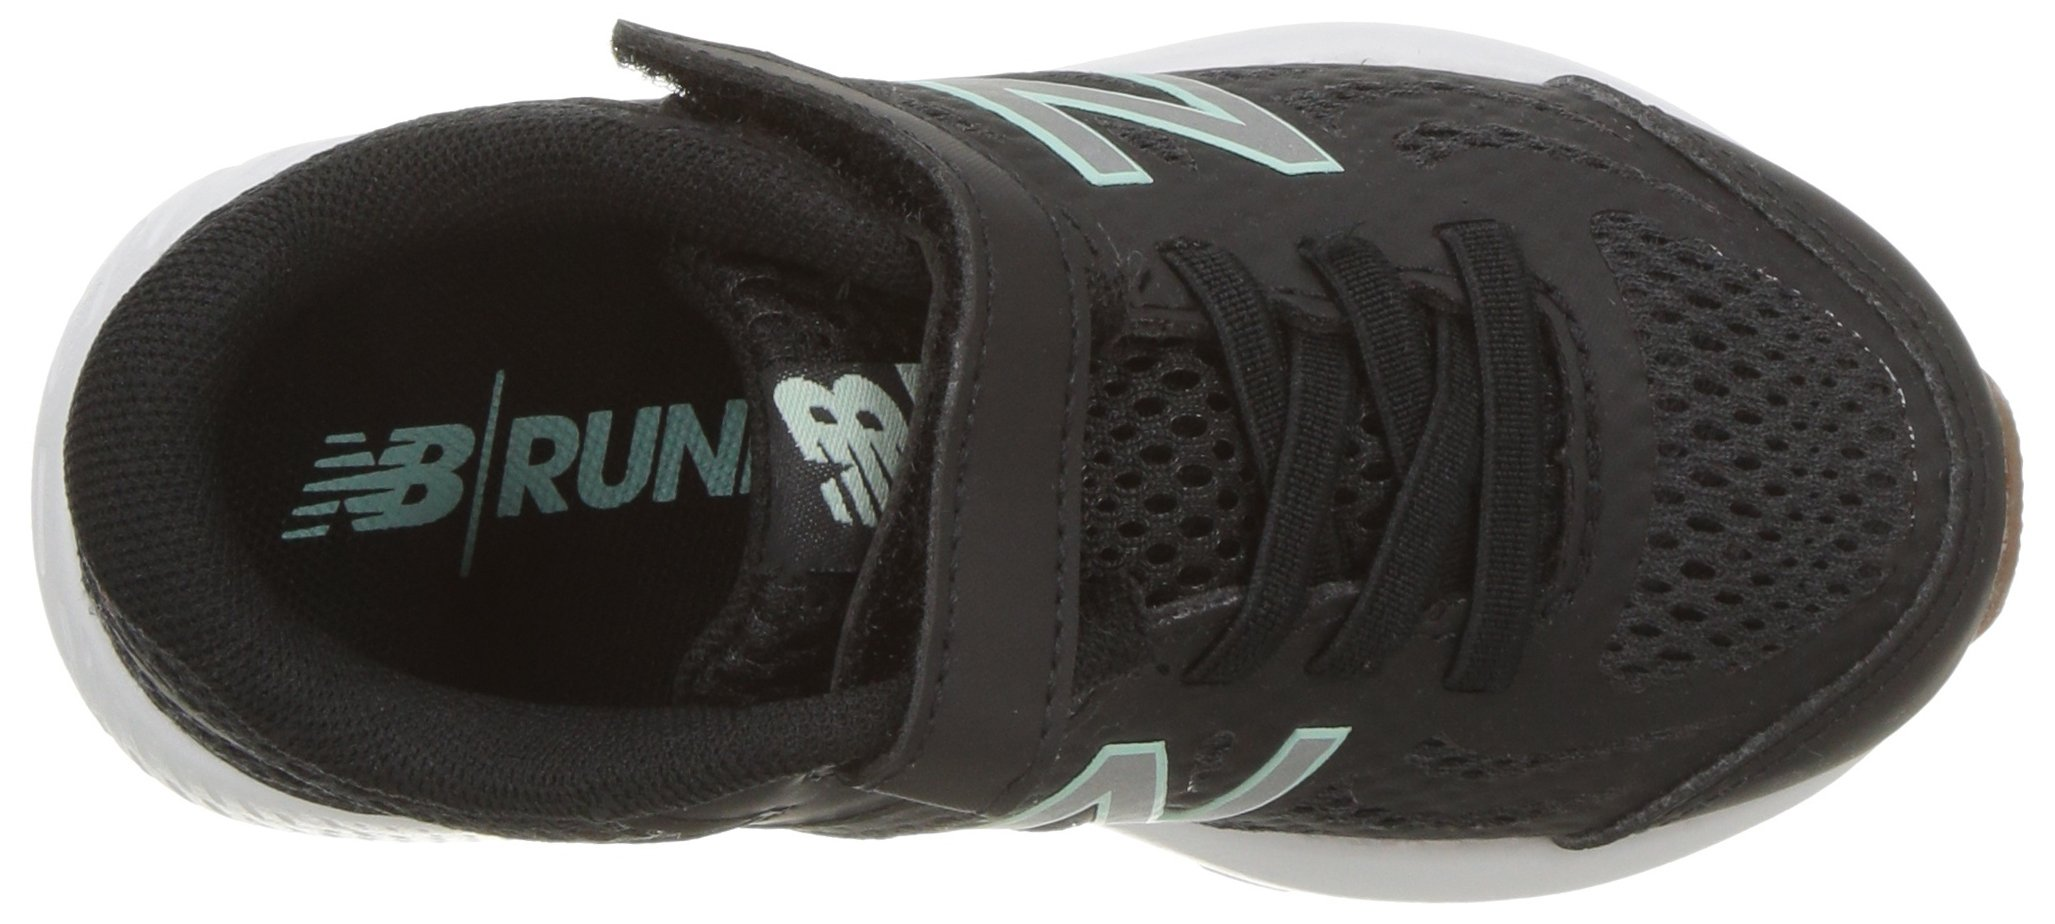 New Balance Girls' 519v1 Hook and Loop Running Shoe Black/Seafoam 2 M US Infant by New Balance (Image #8)